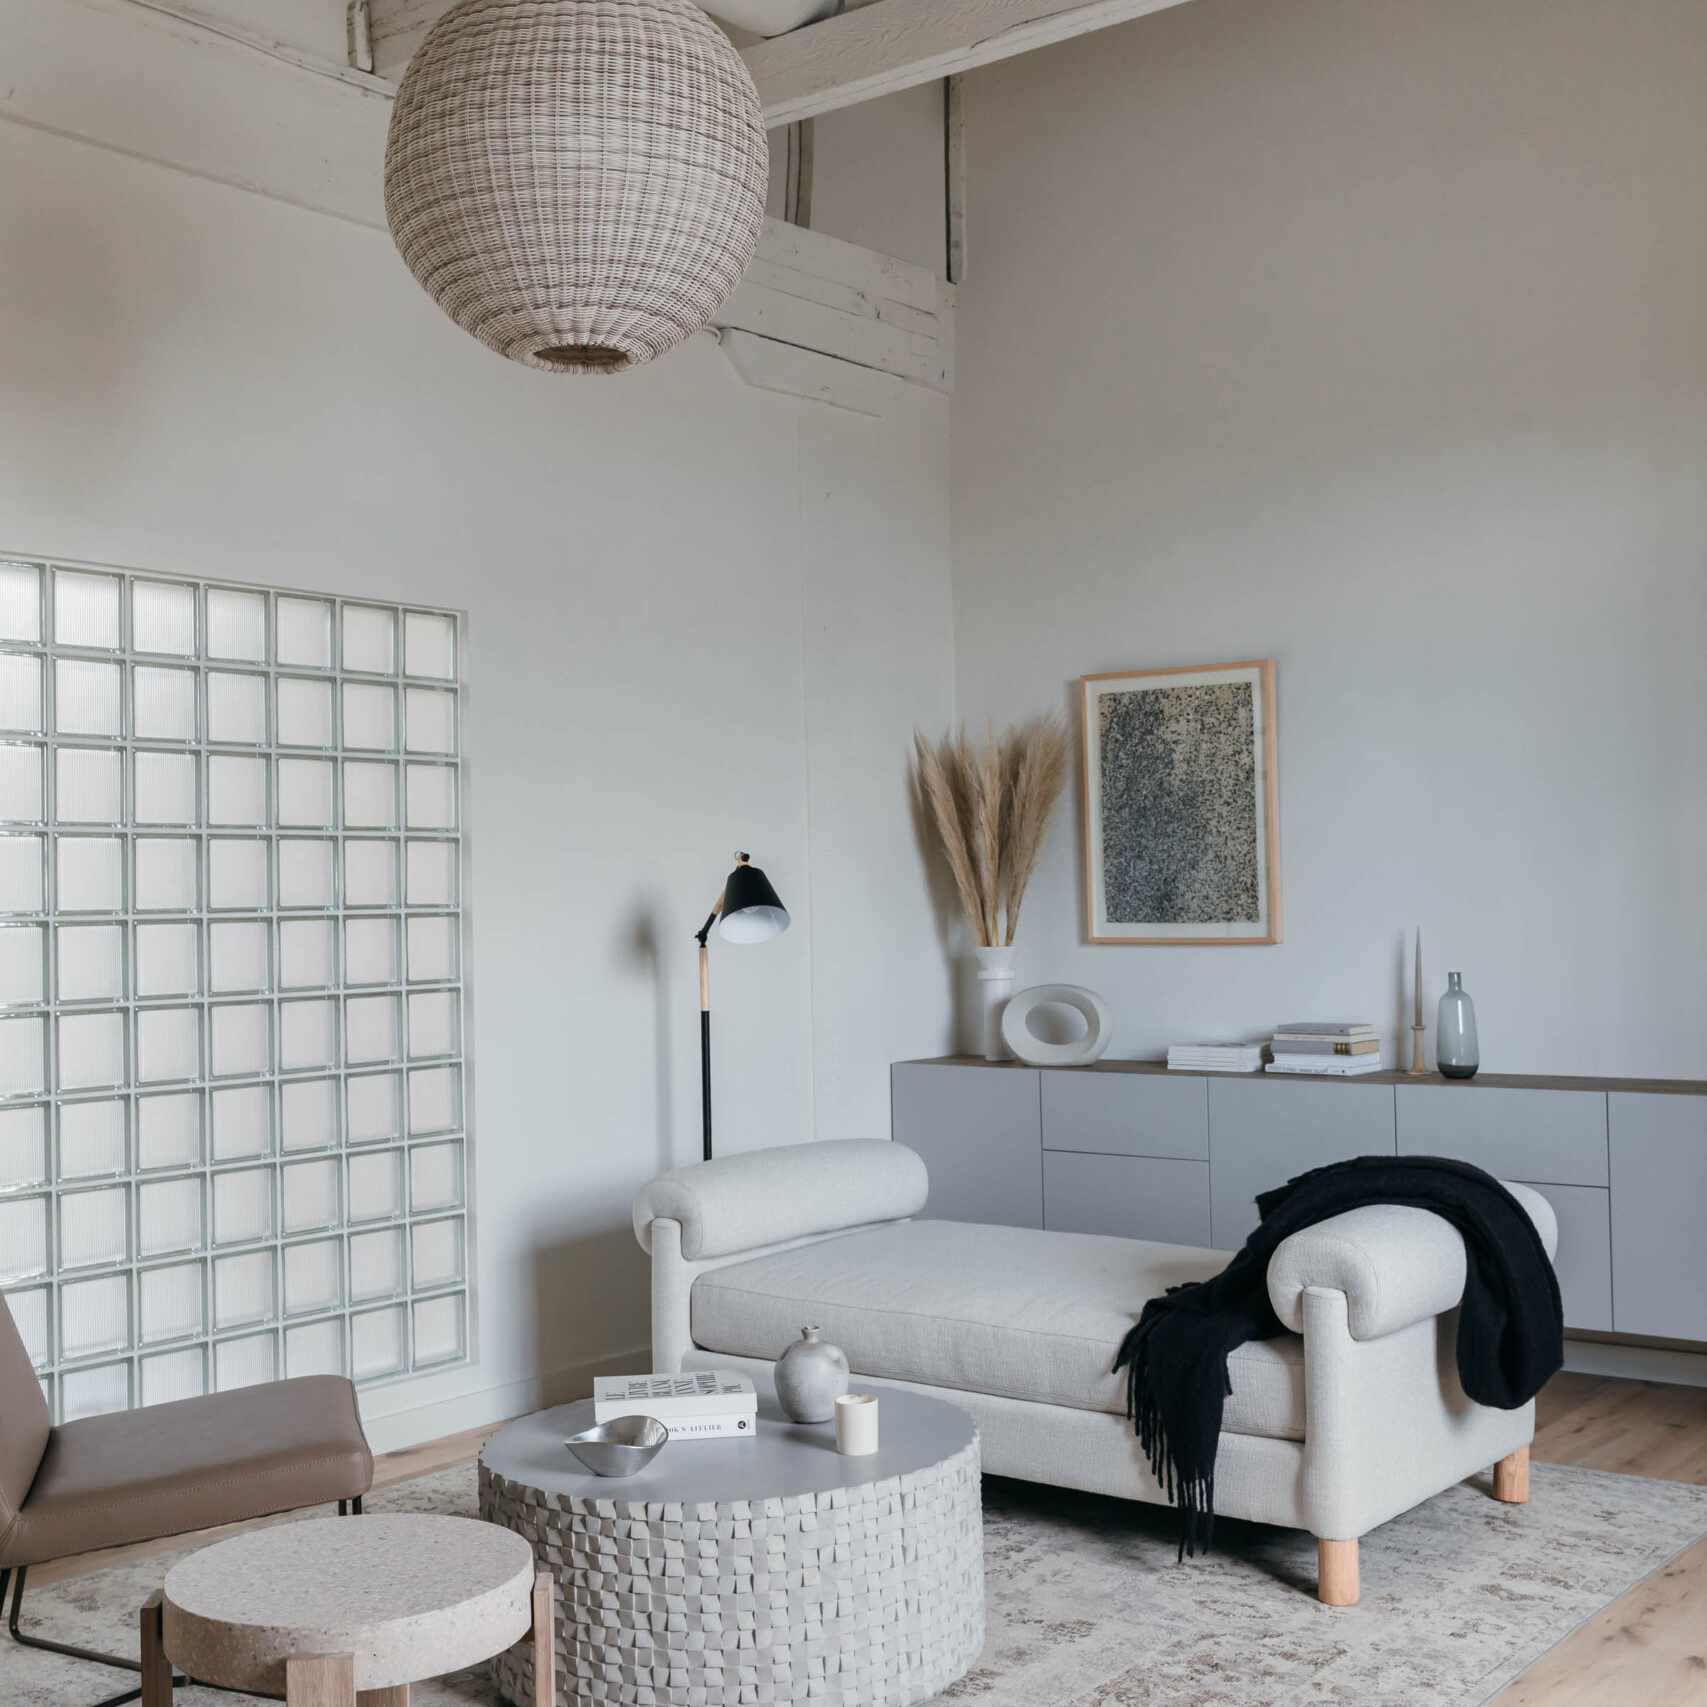 A living room with white walls and exposed ceilings